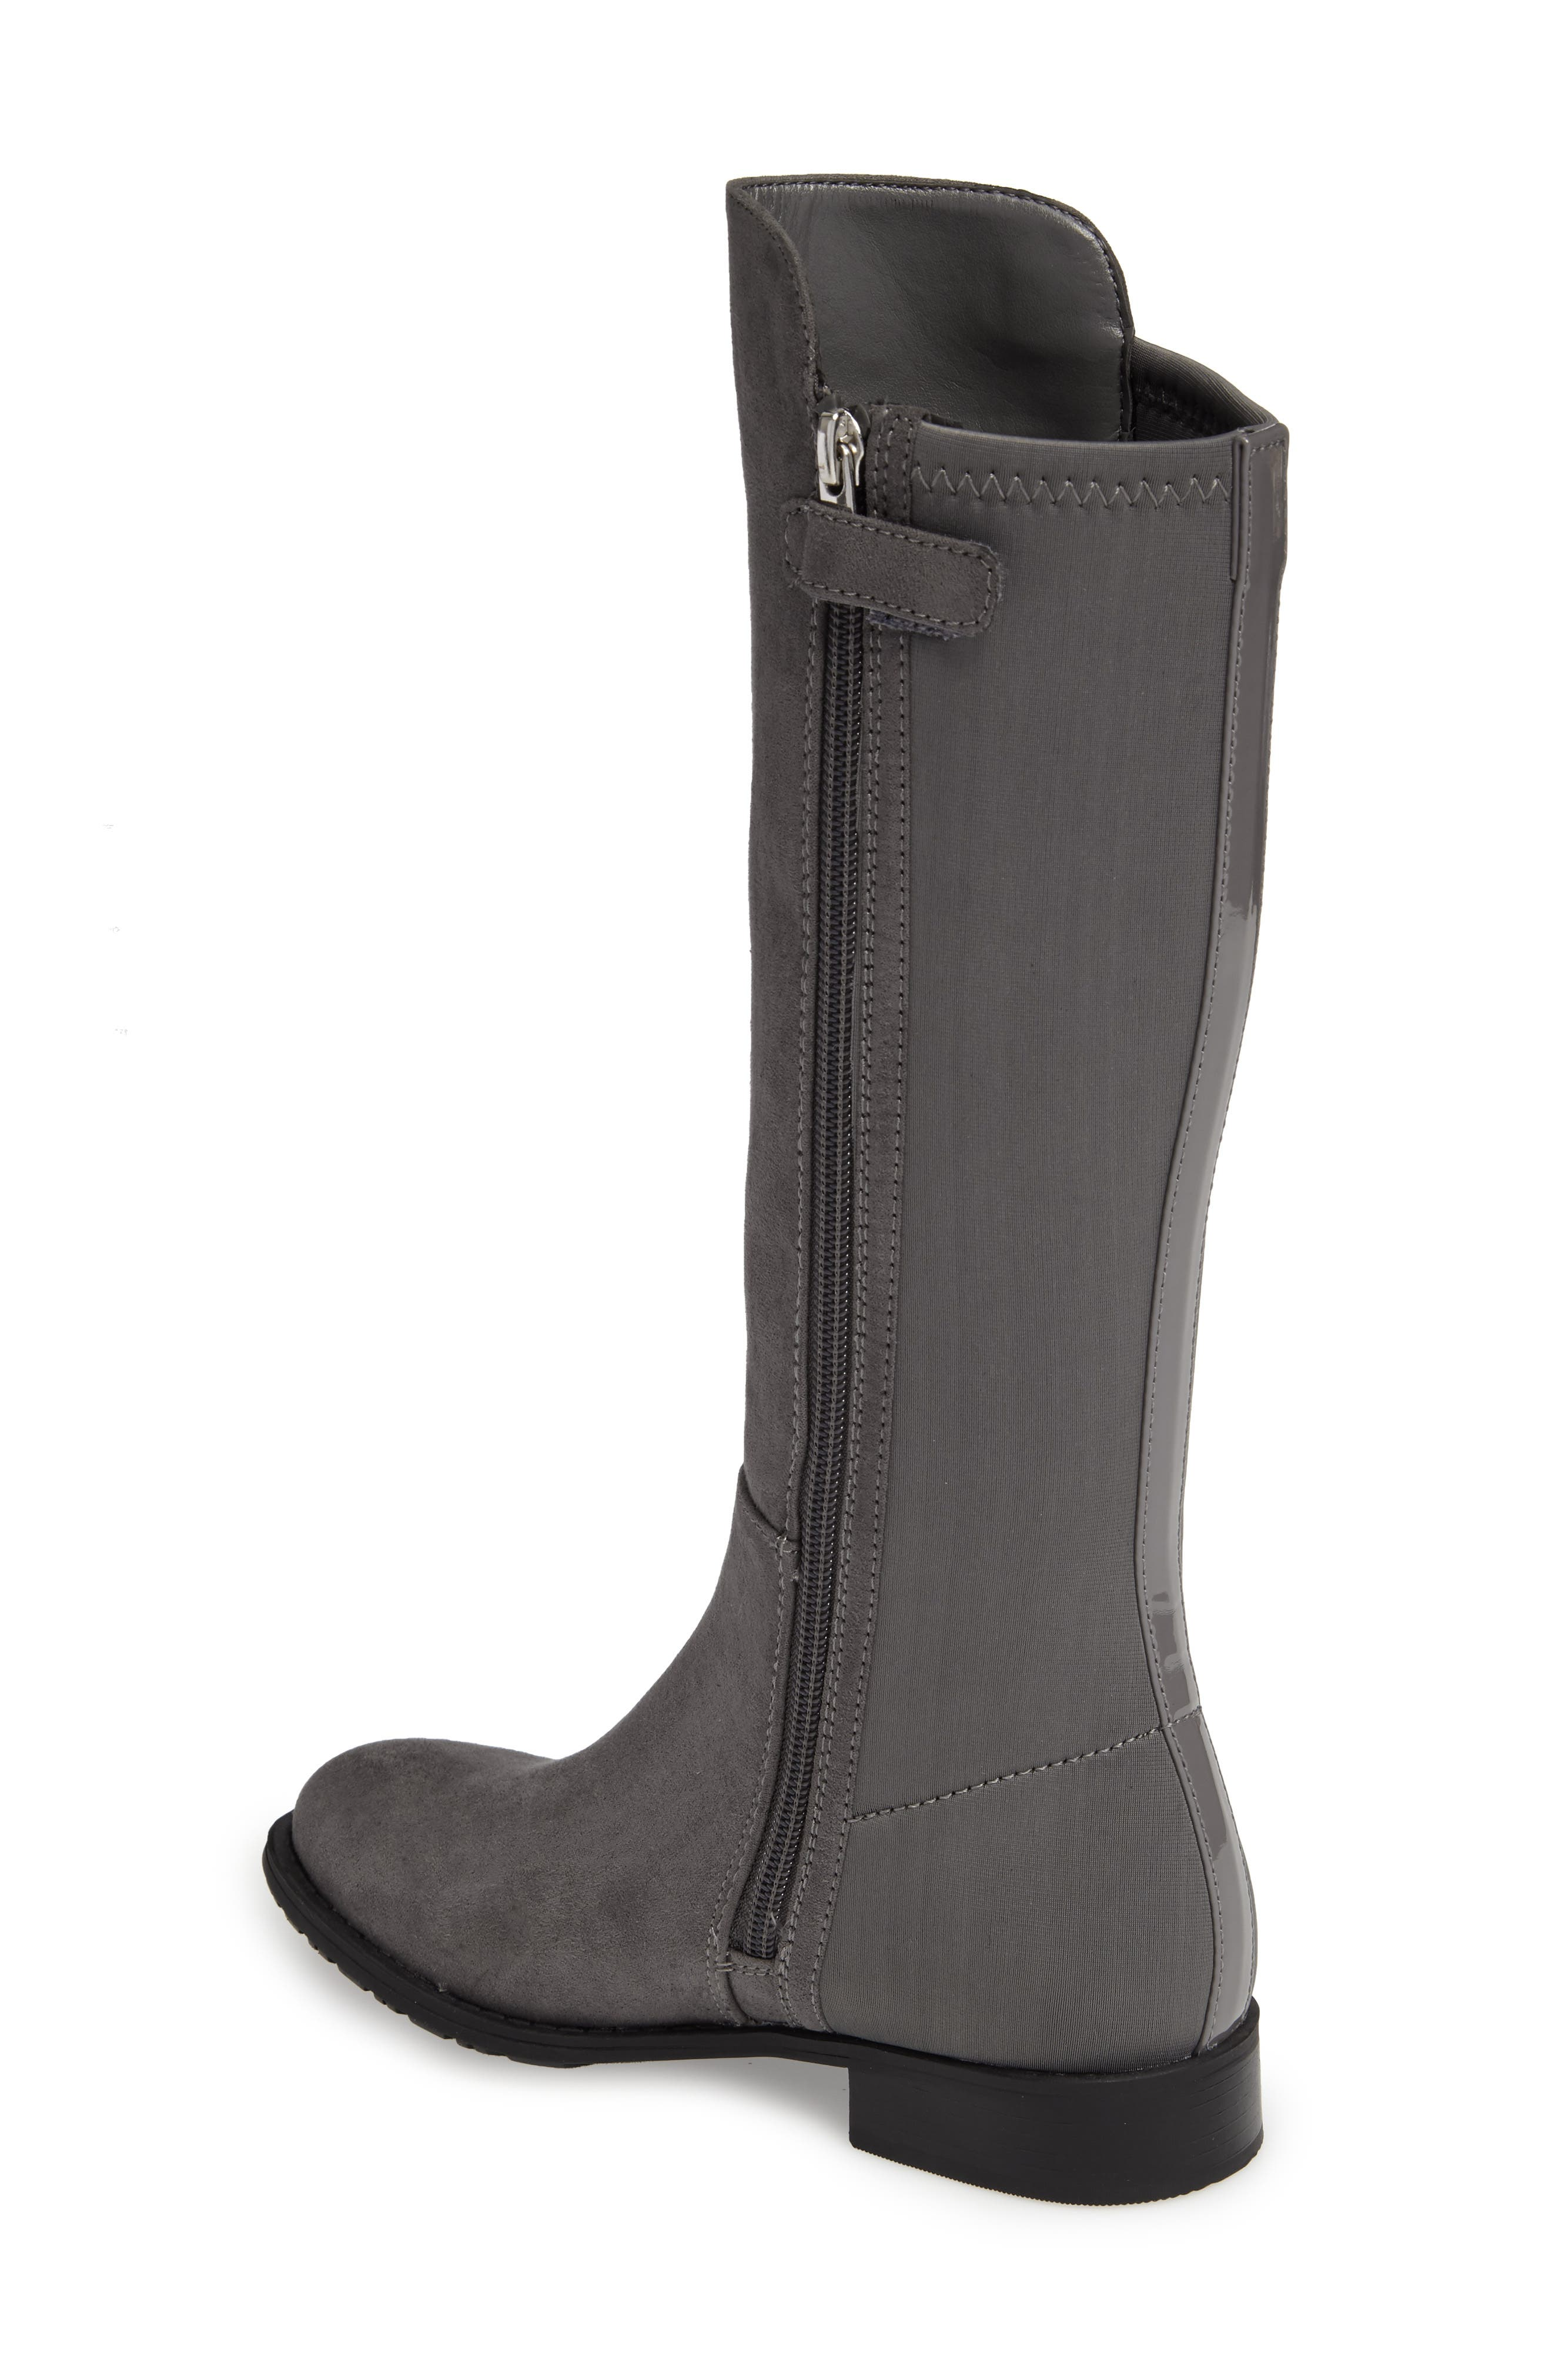 5050 Tall Riding Boot,                             Alternate thumbnail 2, color,                             050